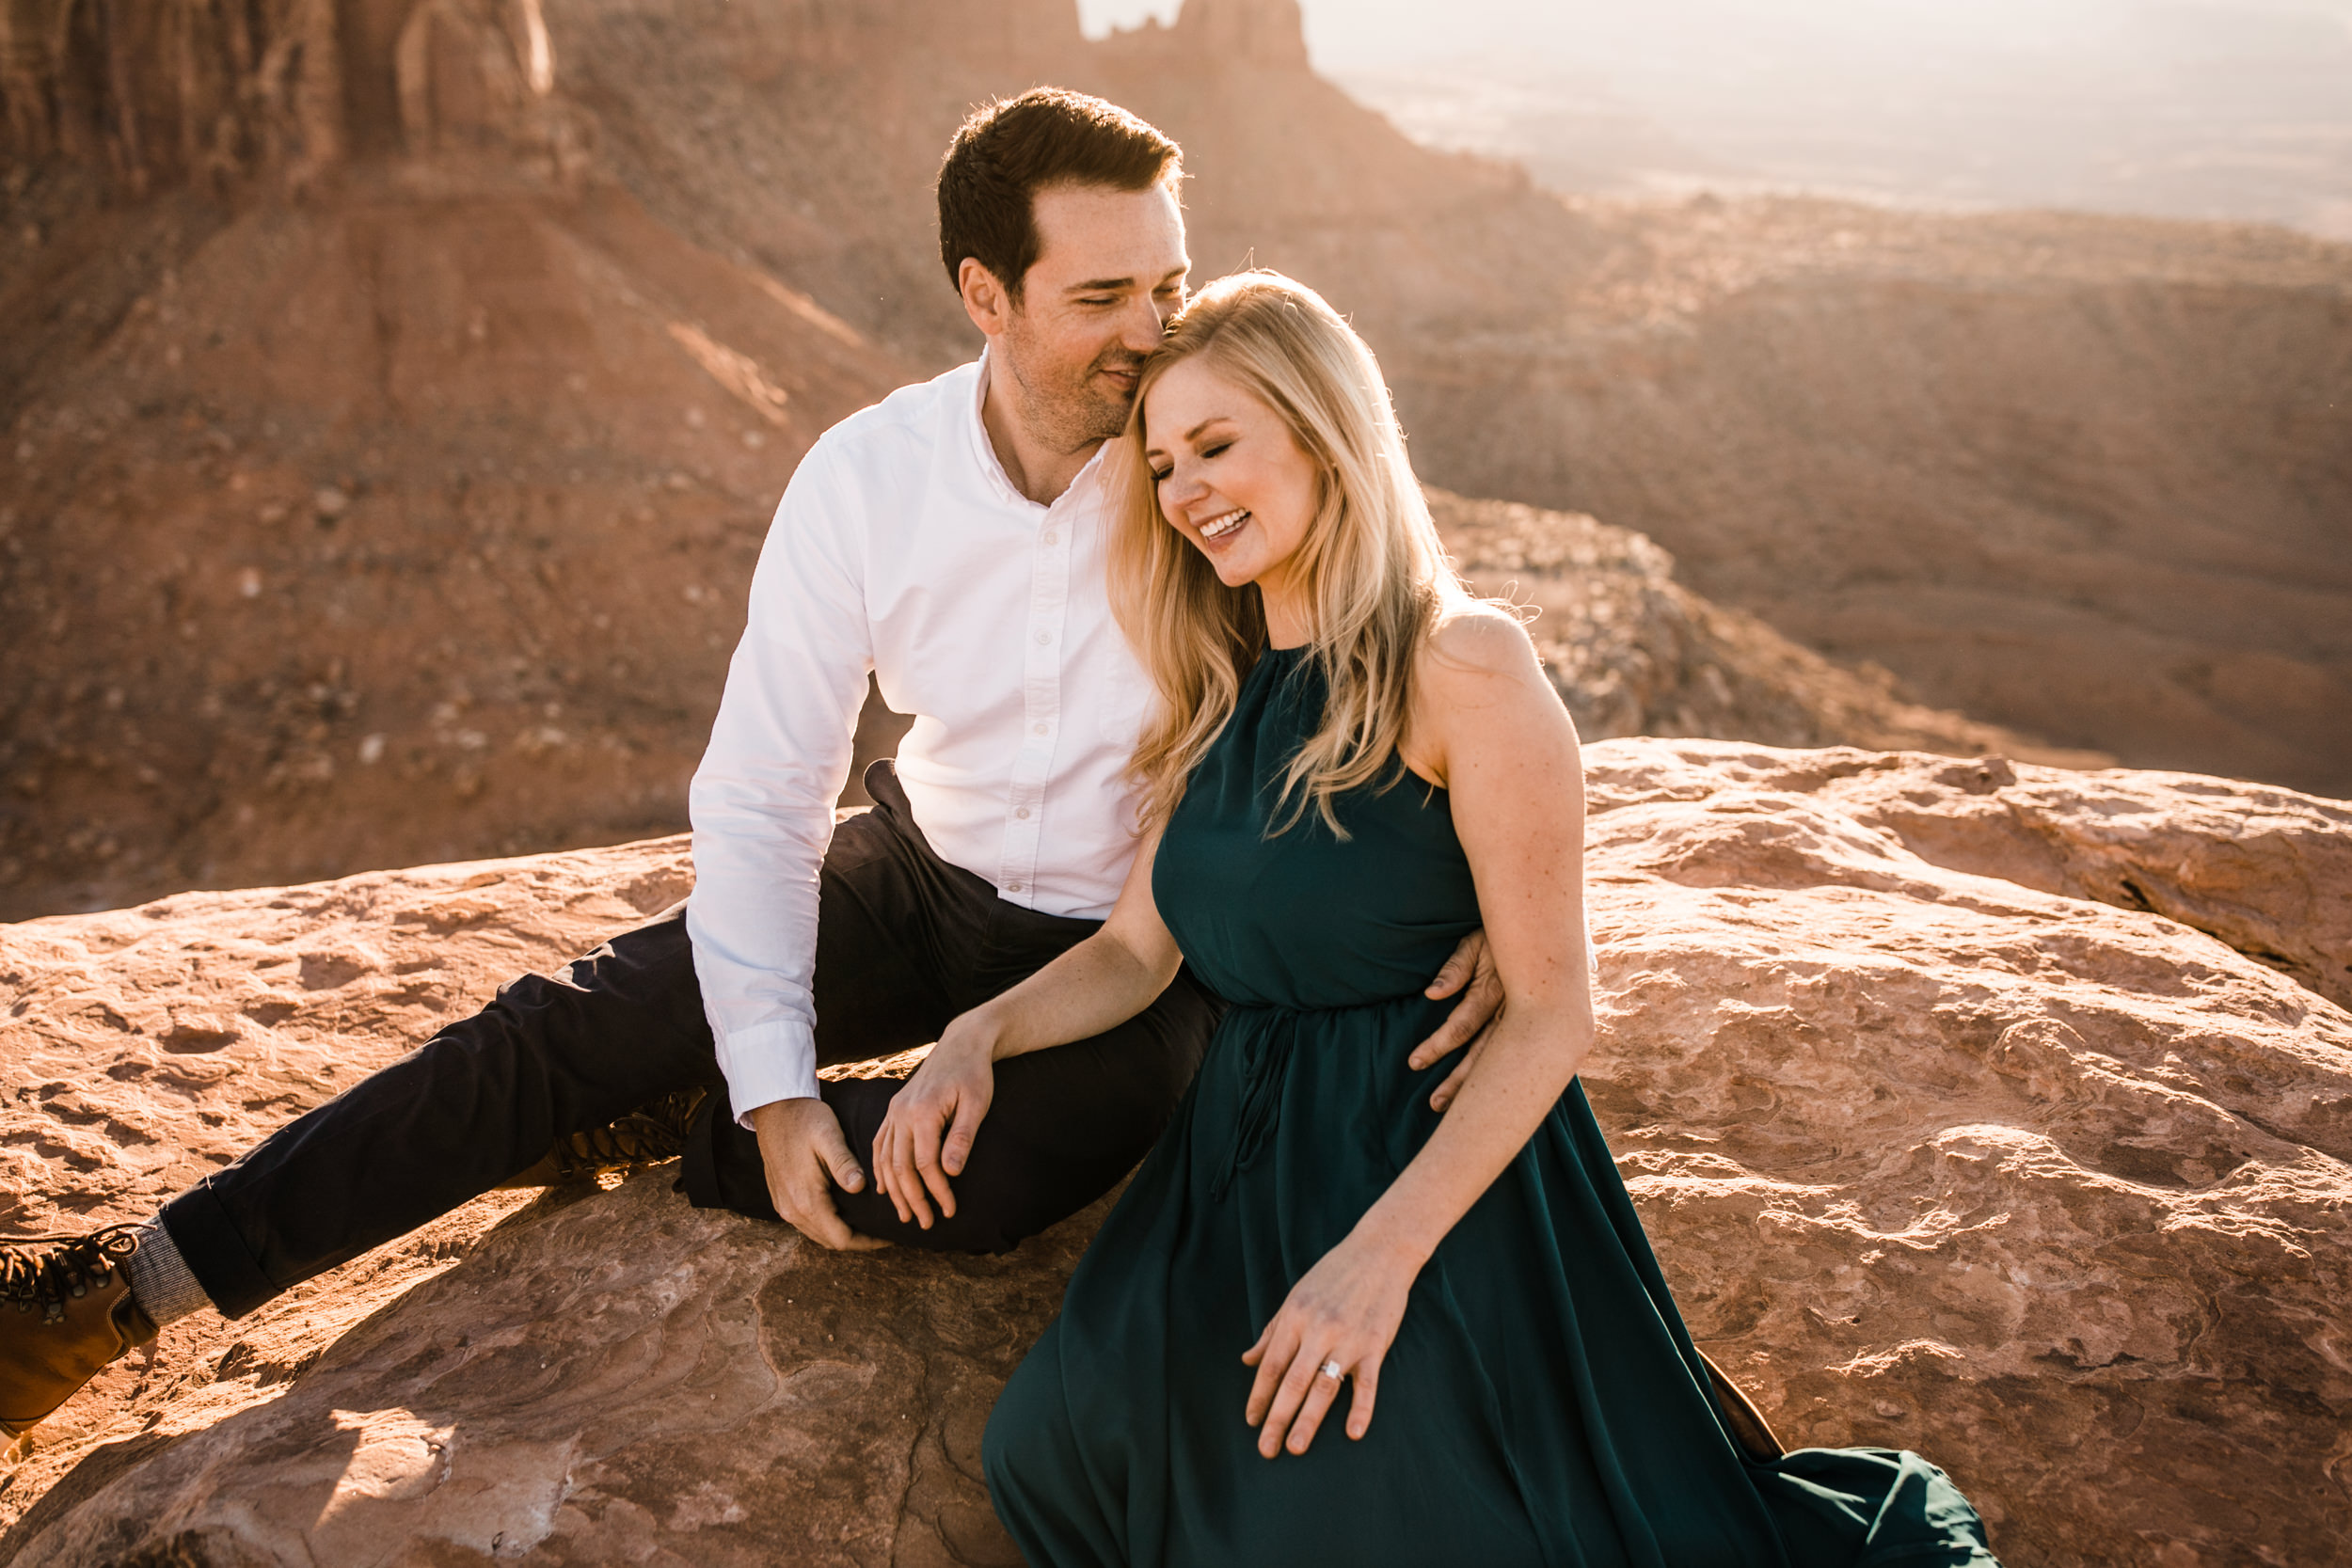 engagement photography session in canyonlands national park near moab utah